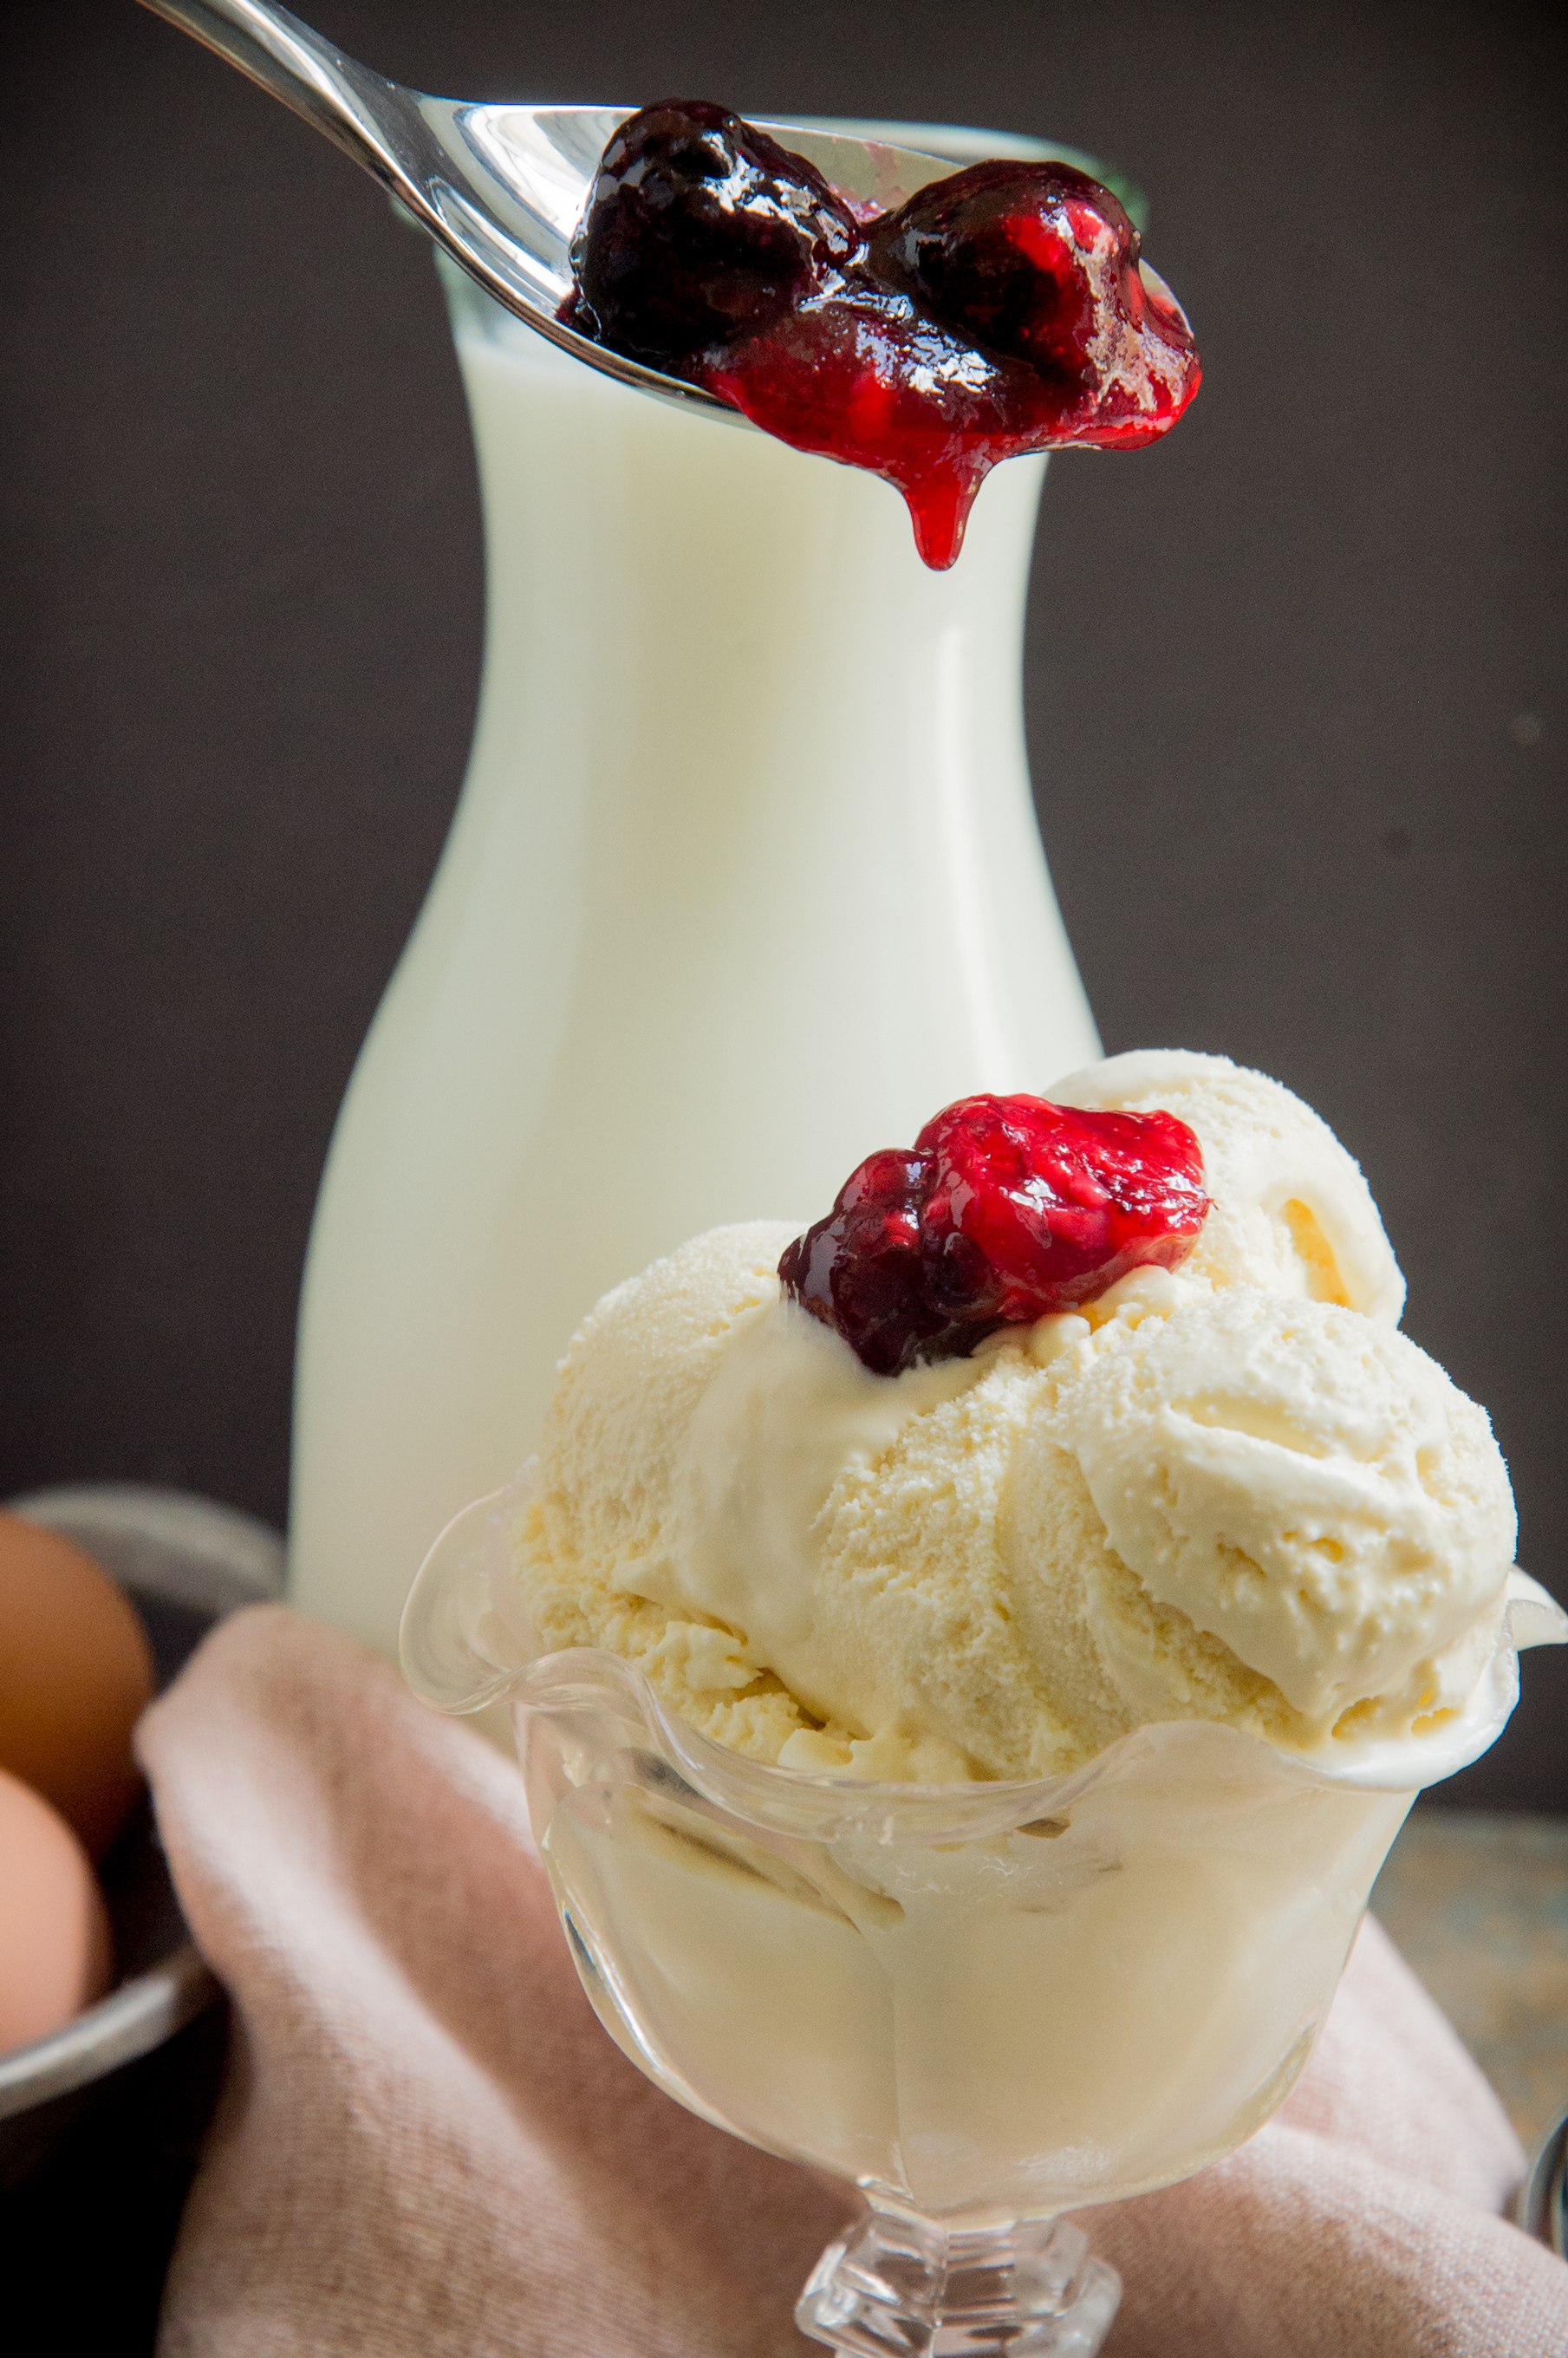 Low Carb Keto Vanilla Ice Cream Recipe-adding some topping.